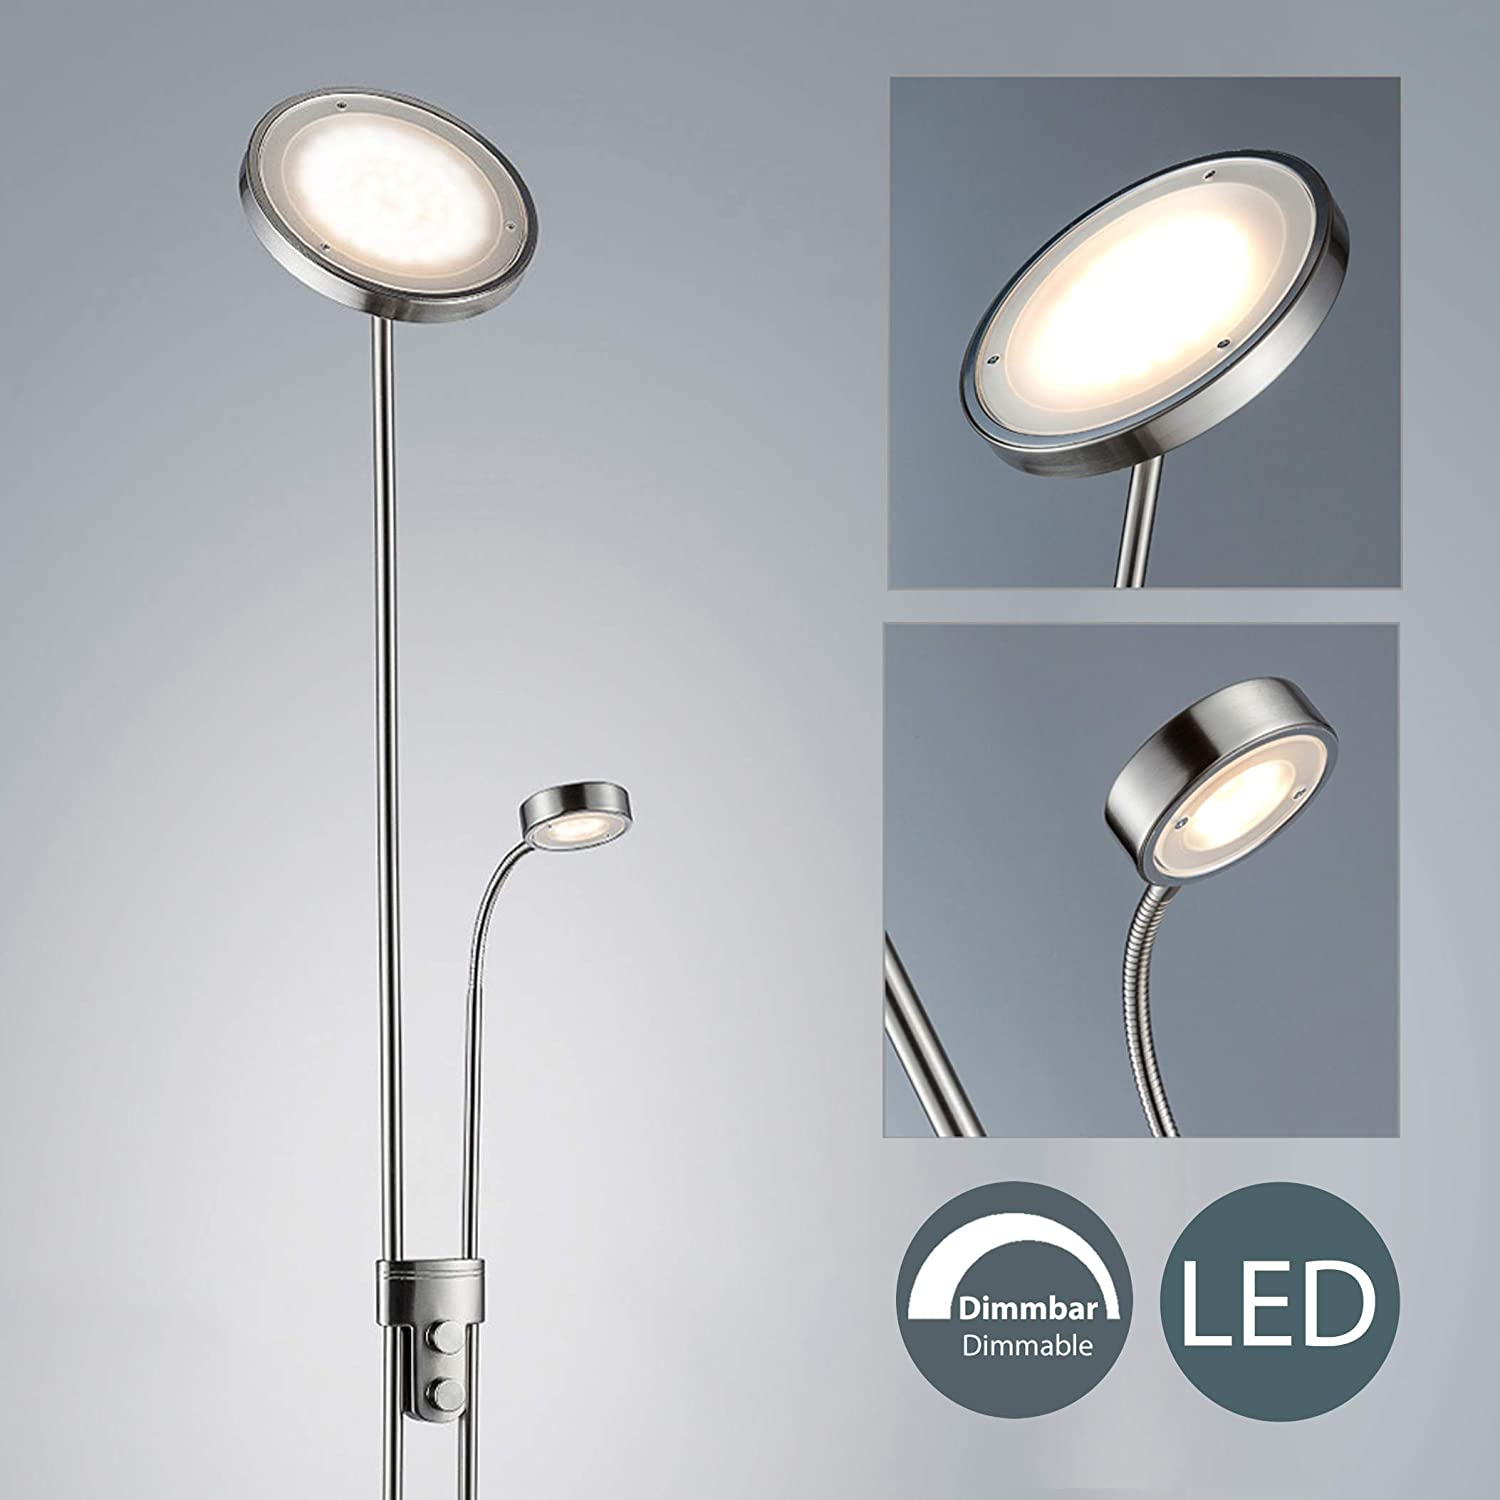 Led Stehleuchte Dimmbar I Deckenfluter Mit Leselampe I Stehlampe